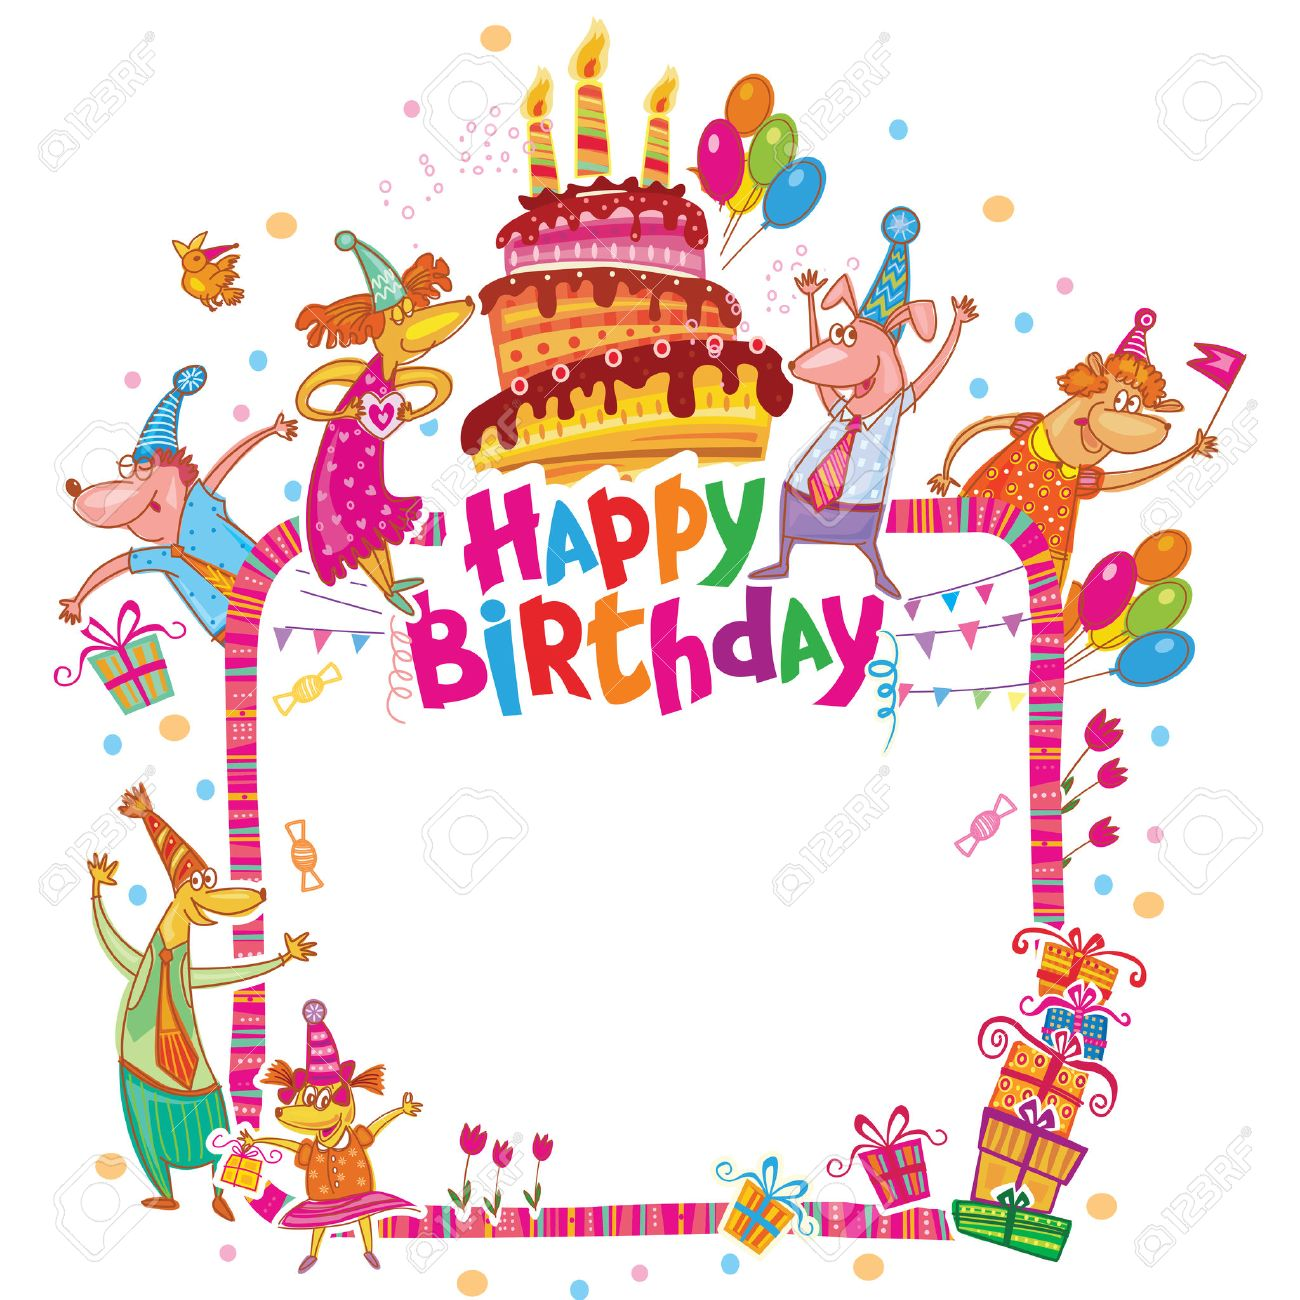 Happy birthday card with place for your text - 36246084